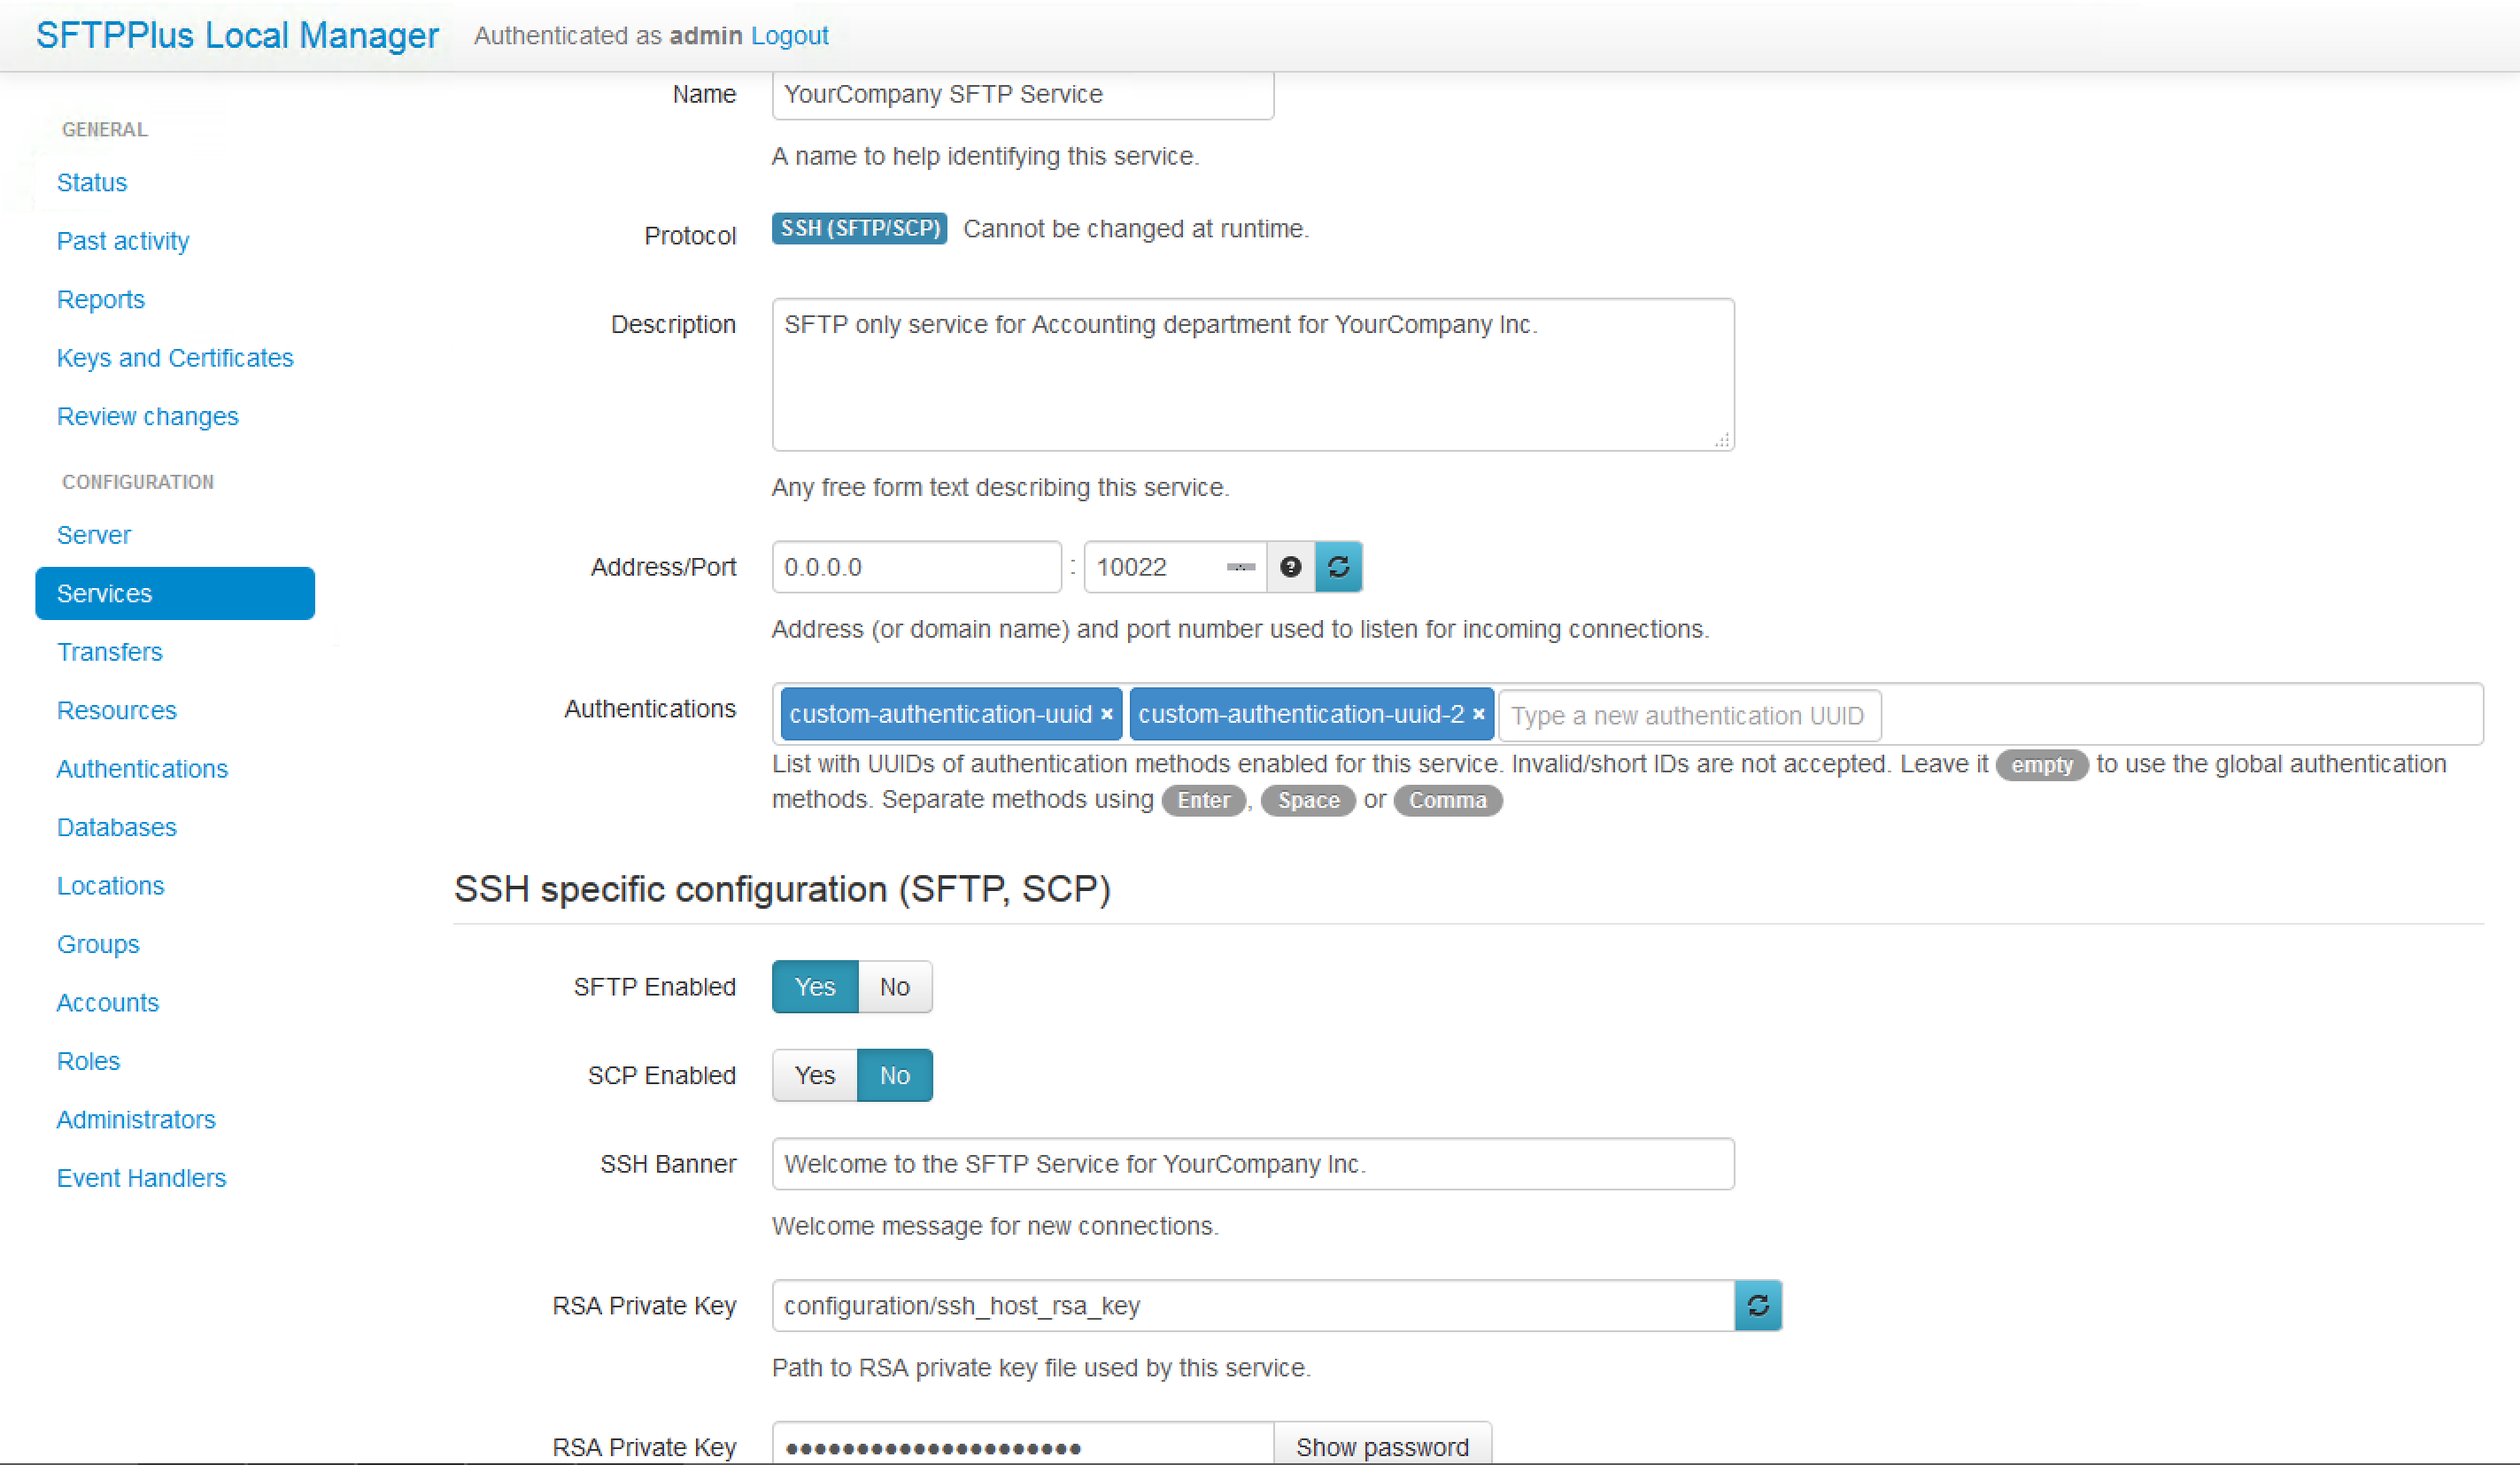 Detailed configuration options available for SFTP / SCP based services.